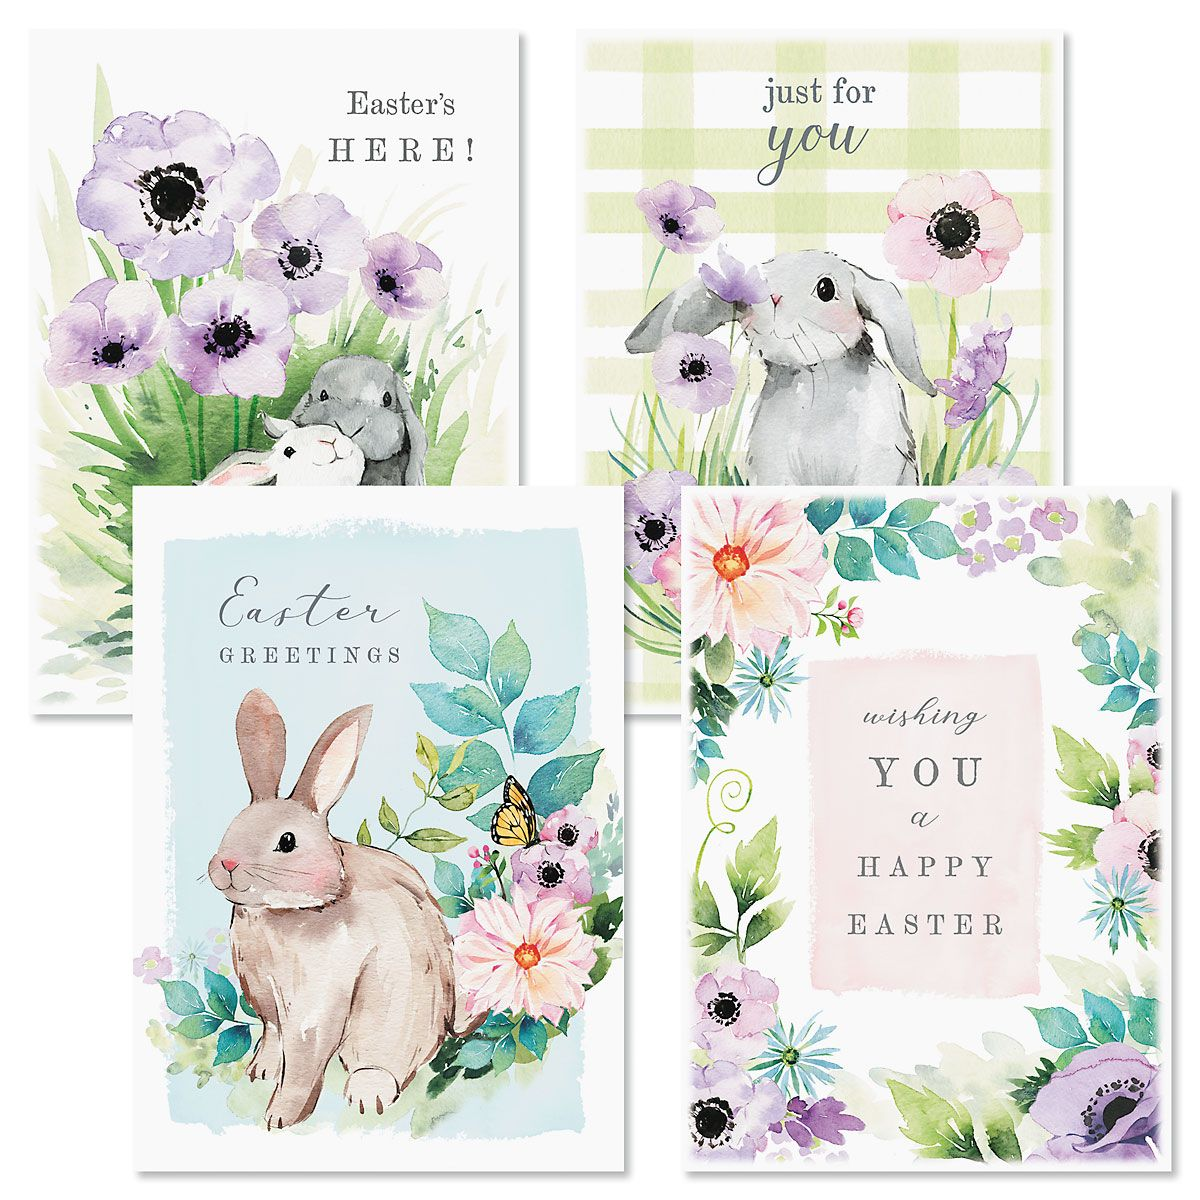 Bunny Garden Easter Cards and Seals